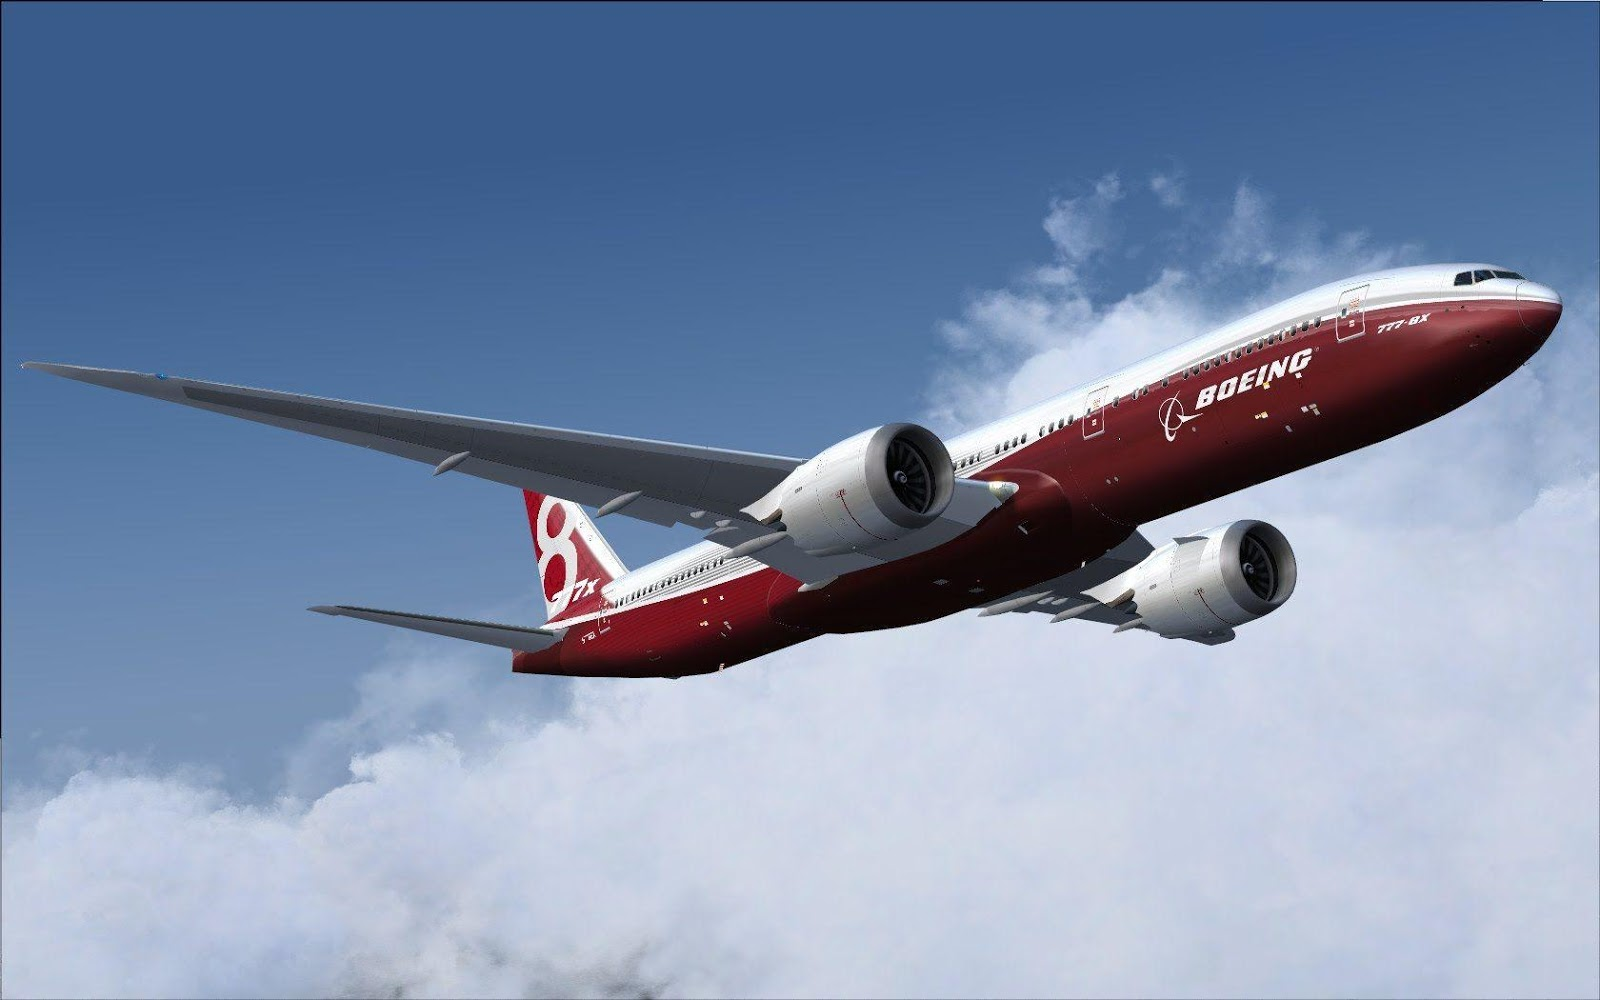 IAI Gears to Begin Delivery of 777X Assemblies wallpapers